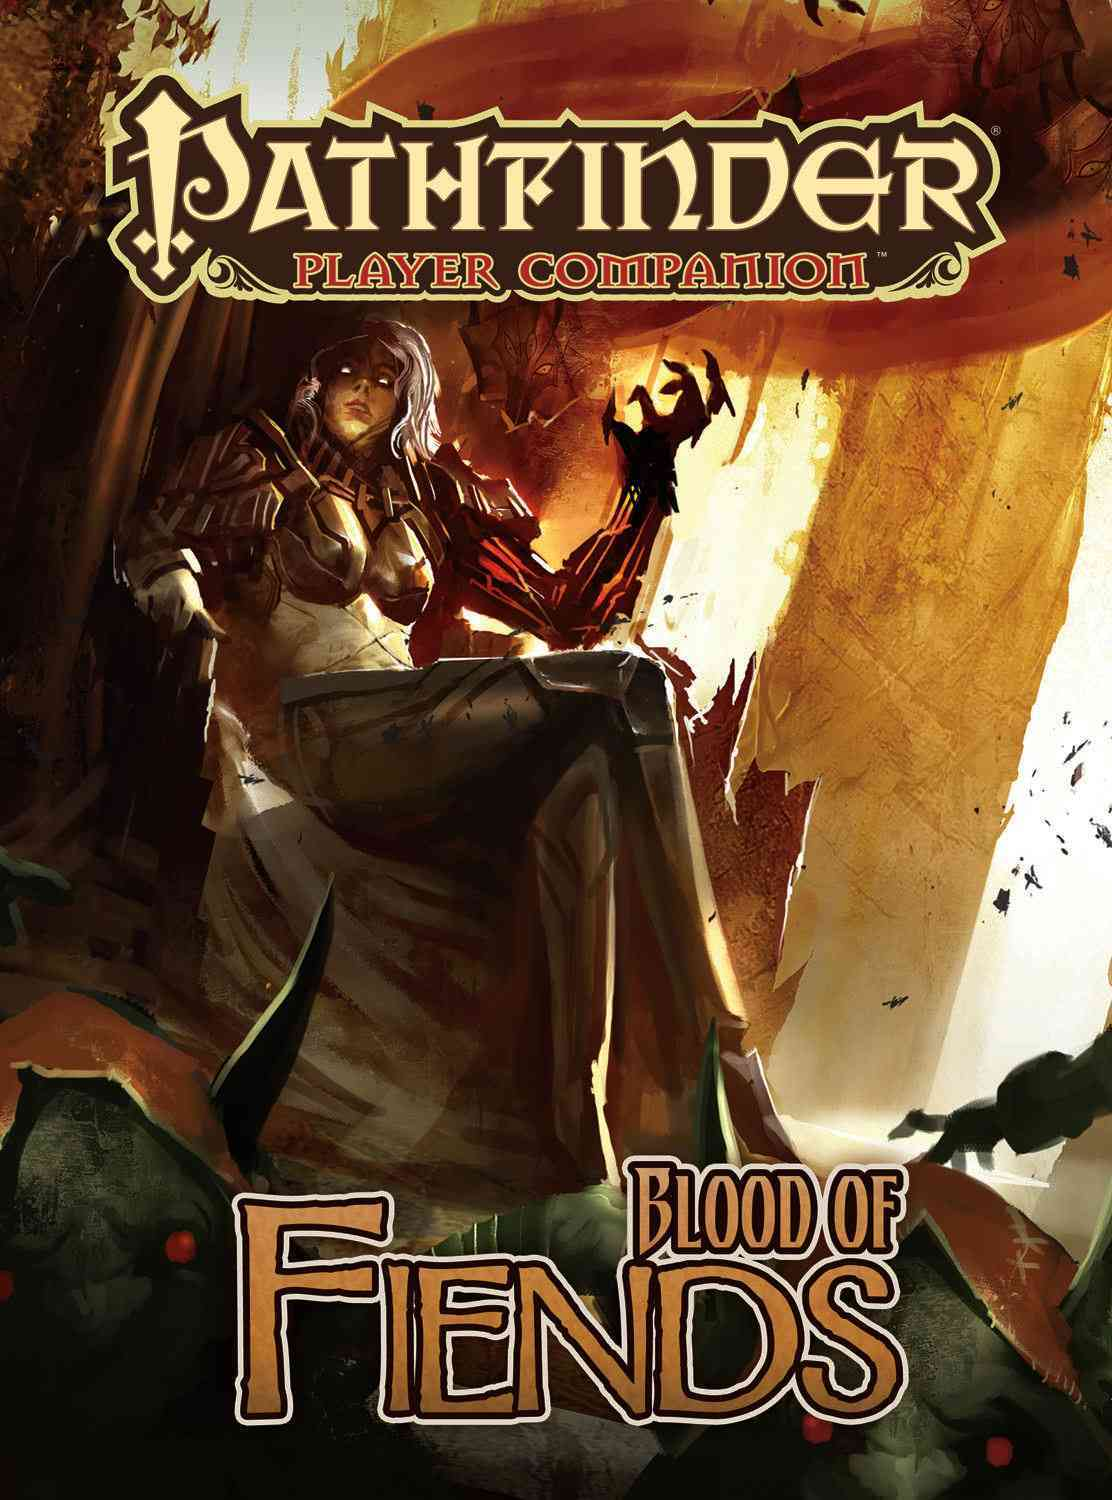 Blood of Fiends (Paperback)